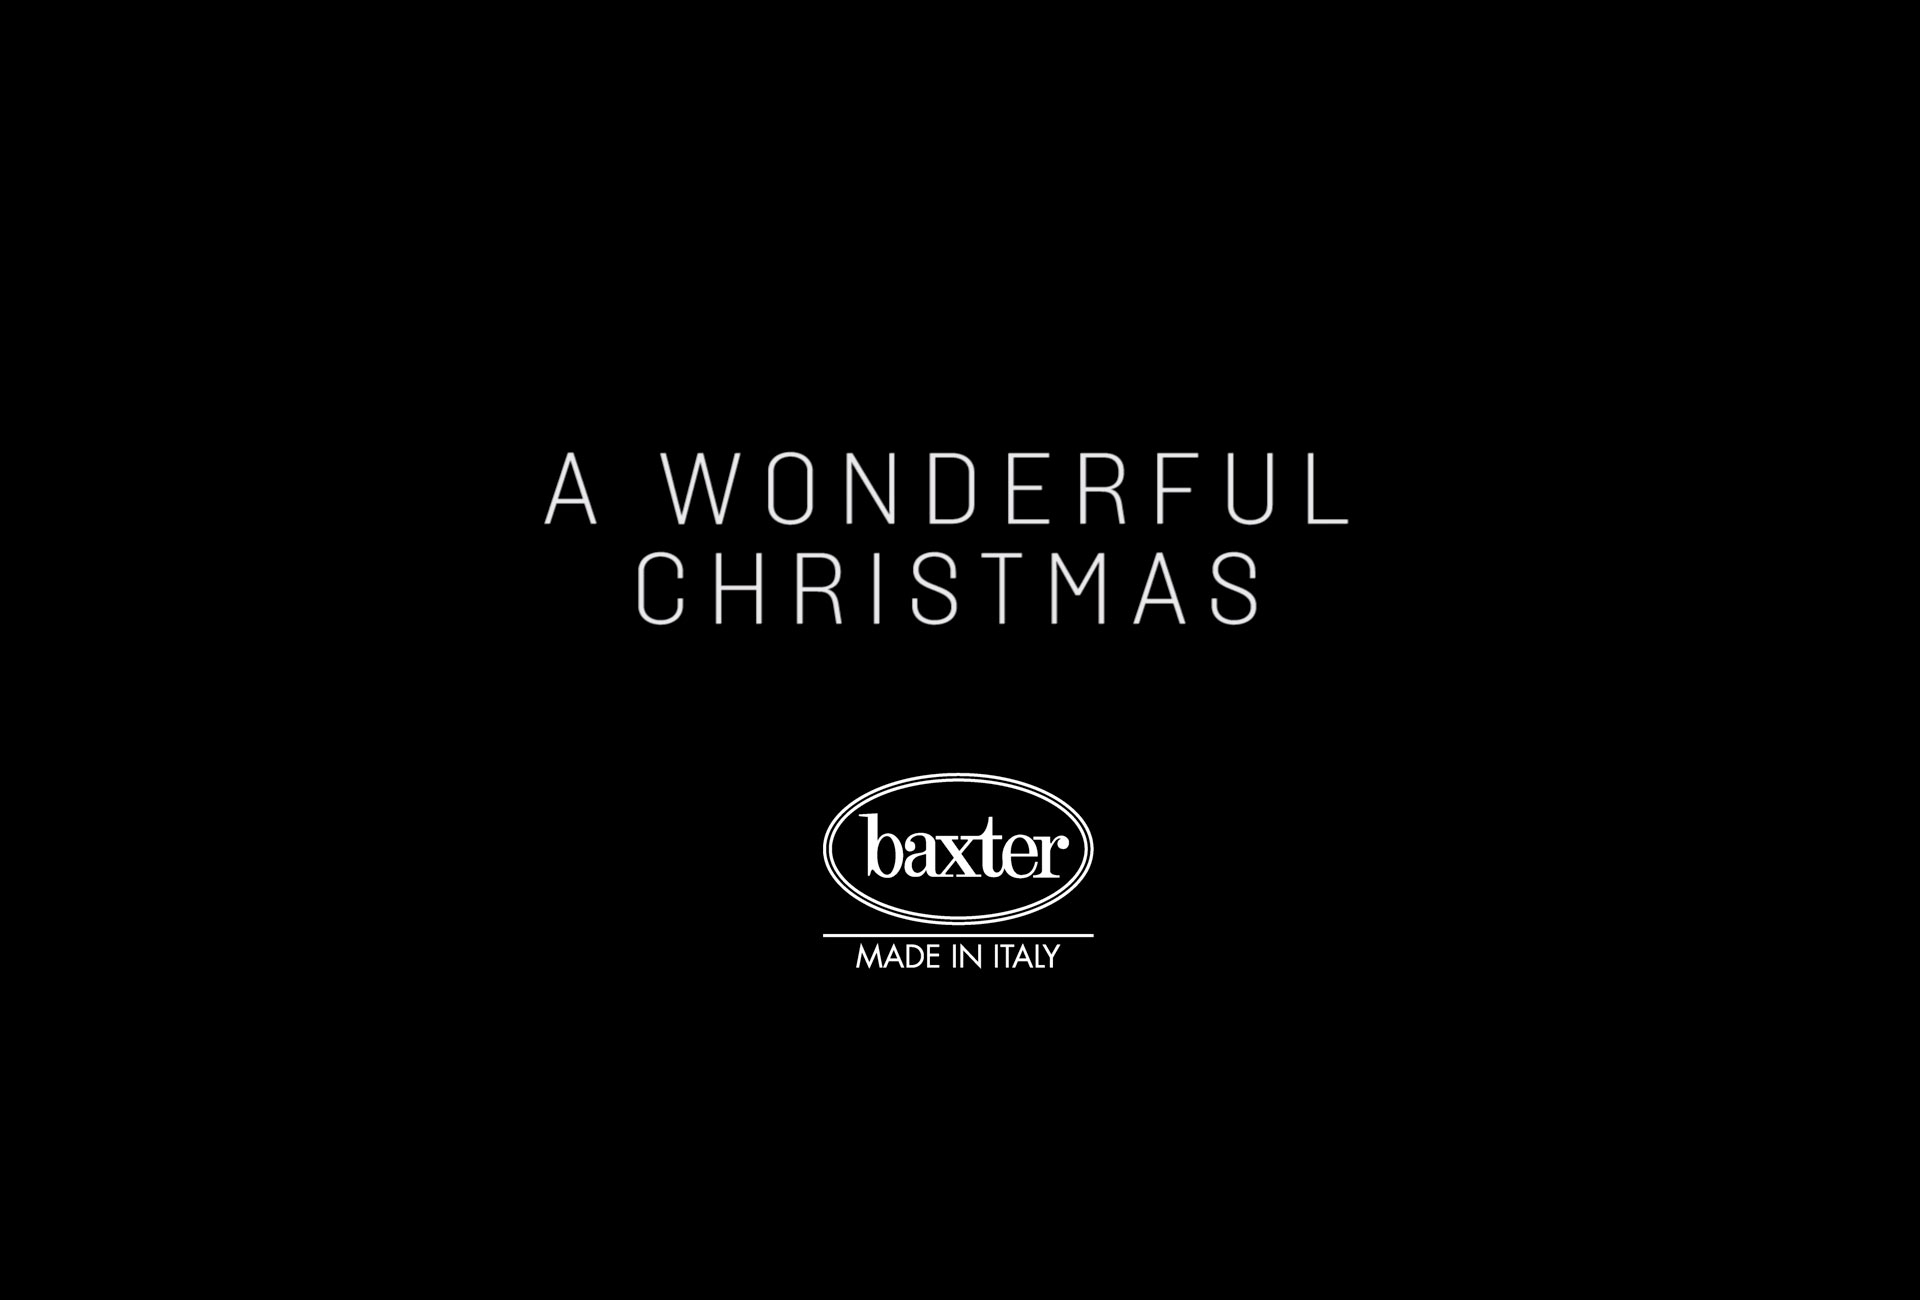 A WONDERFUL CHRISTMAS - BAXTER 2019